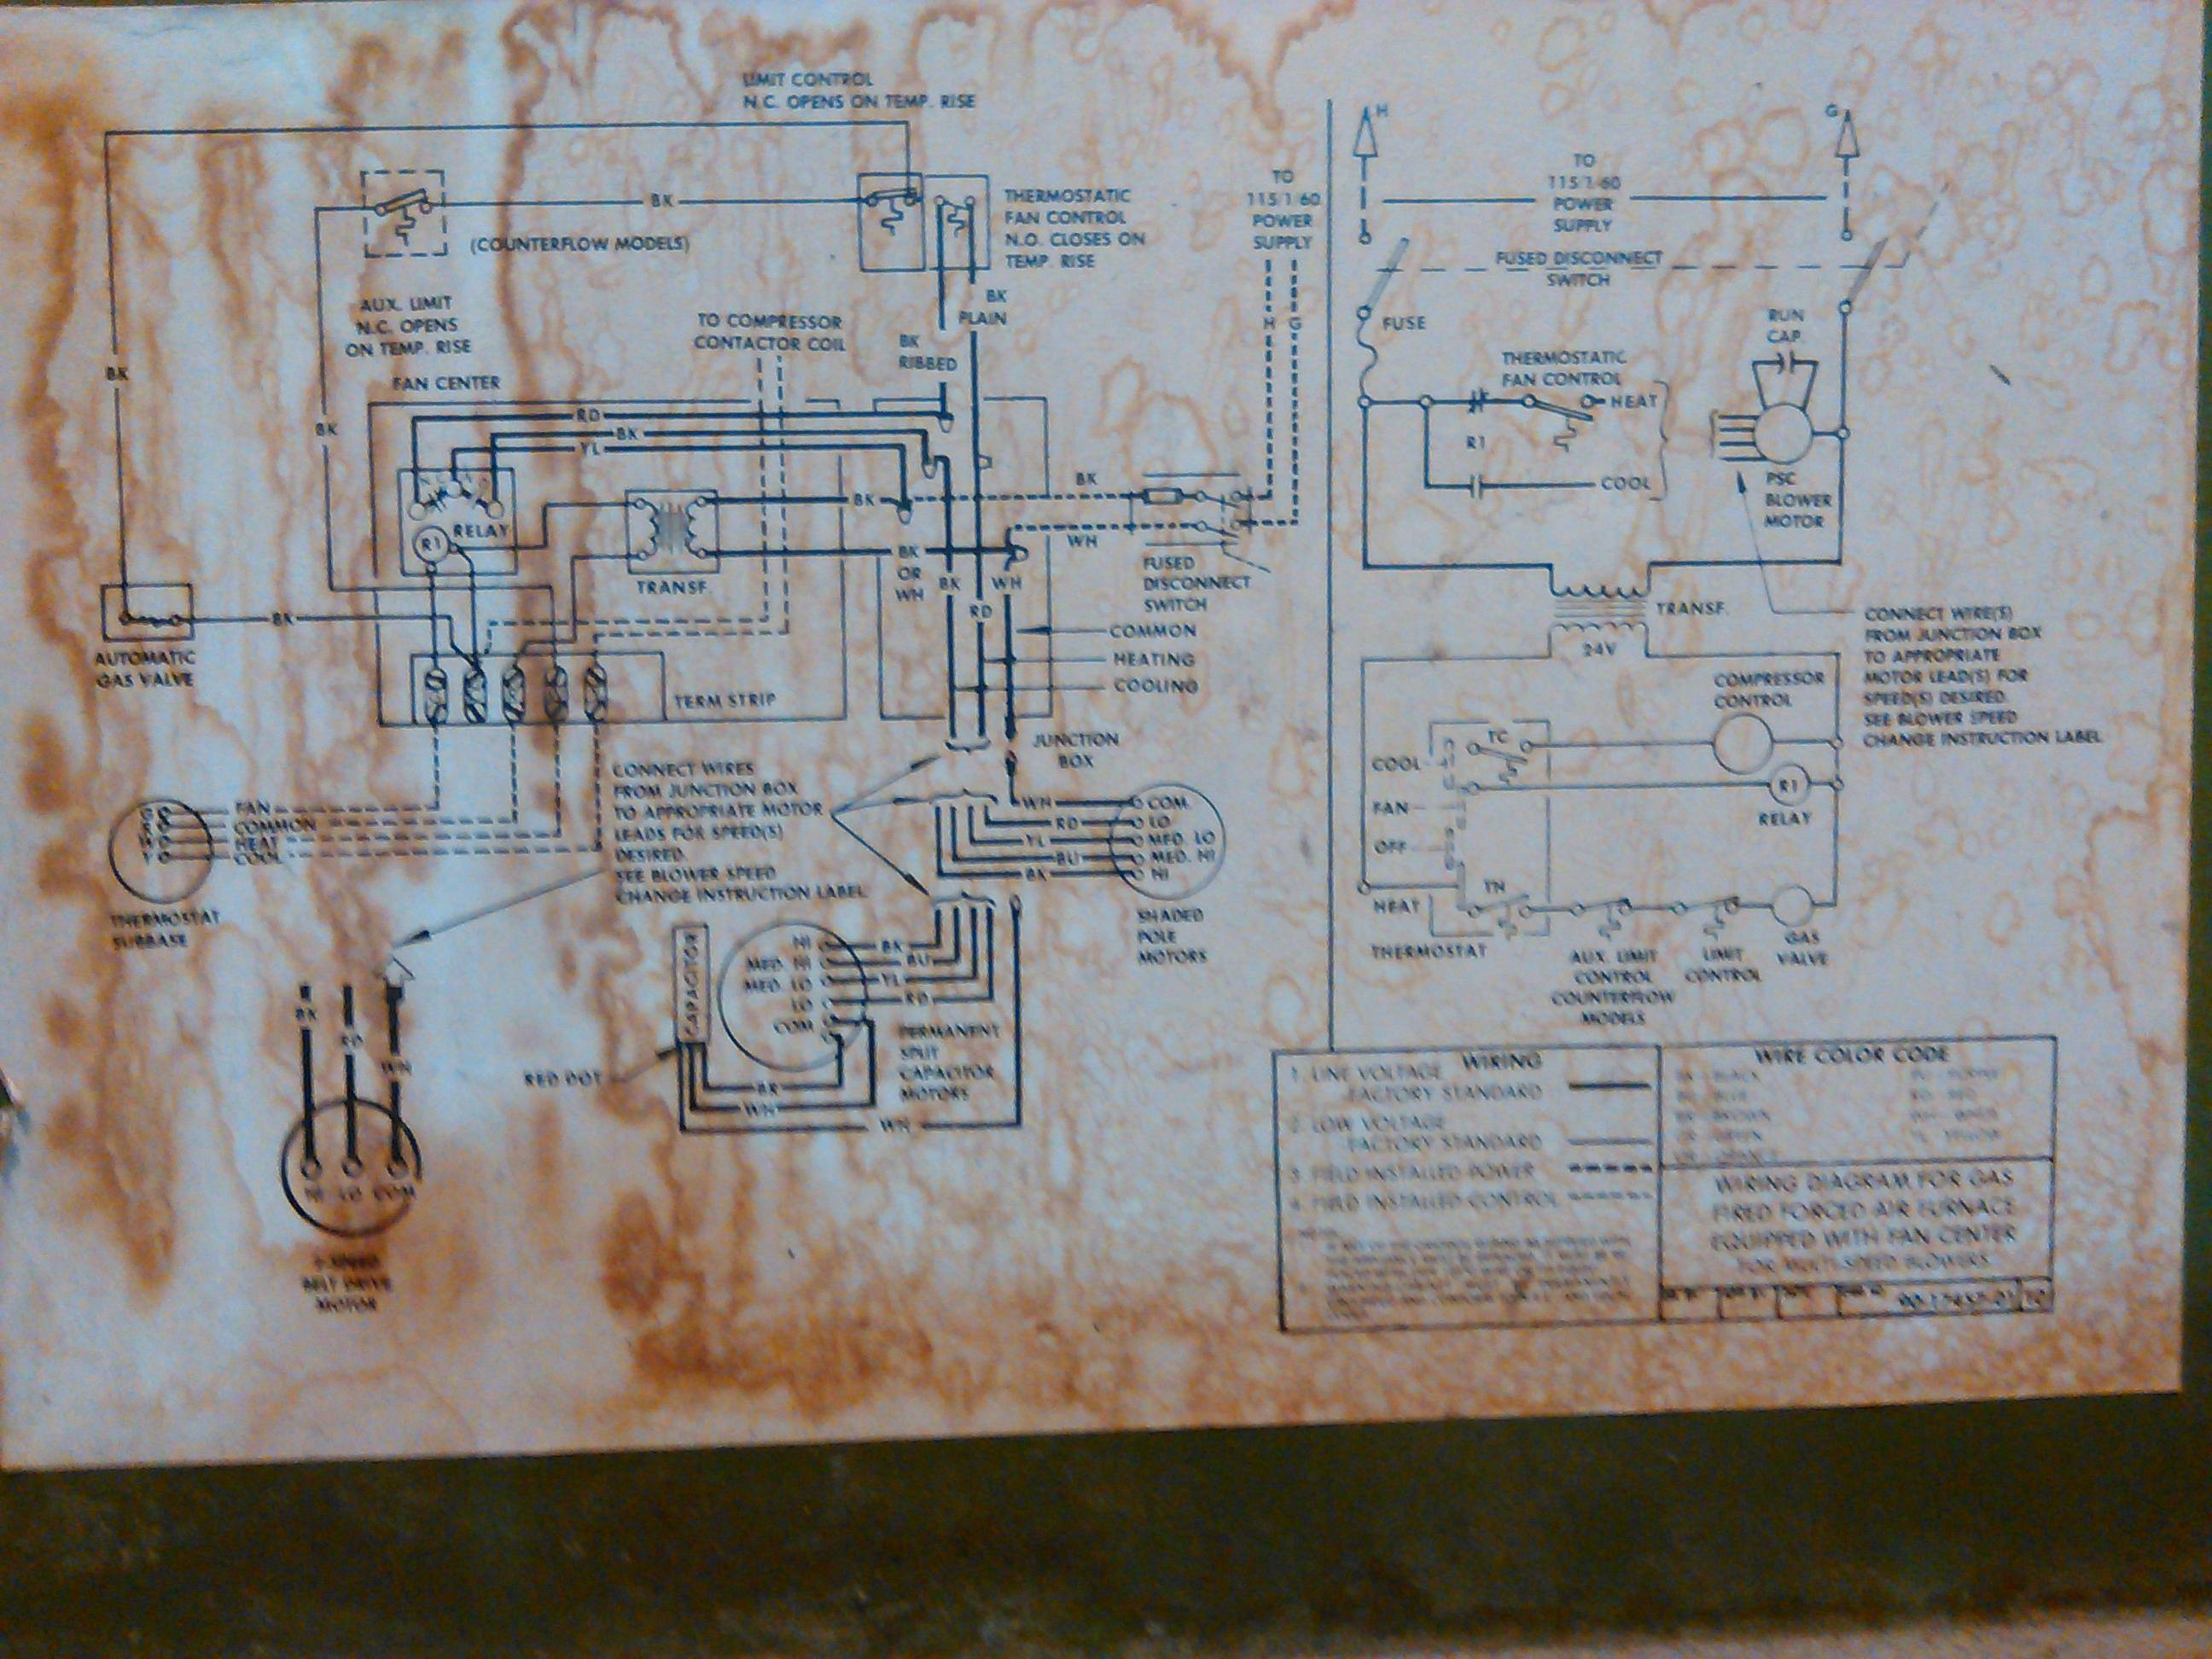 Hvac - Replace Old Furnace Blower Motor With A New One But The Wires - Coleman Electric Furnace Wiring Diagram